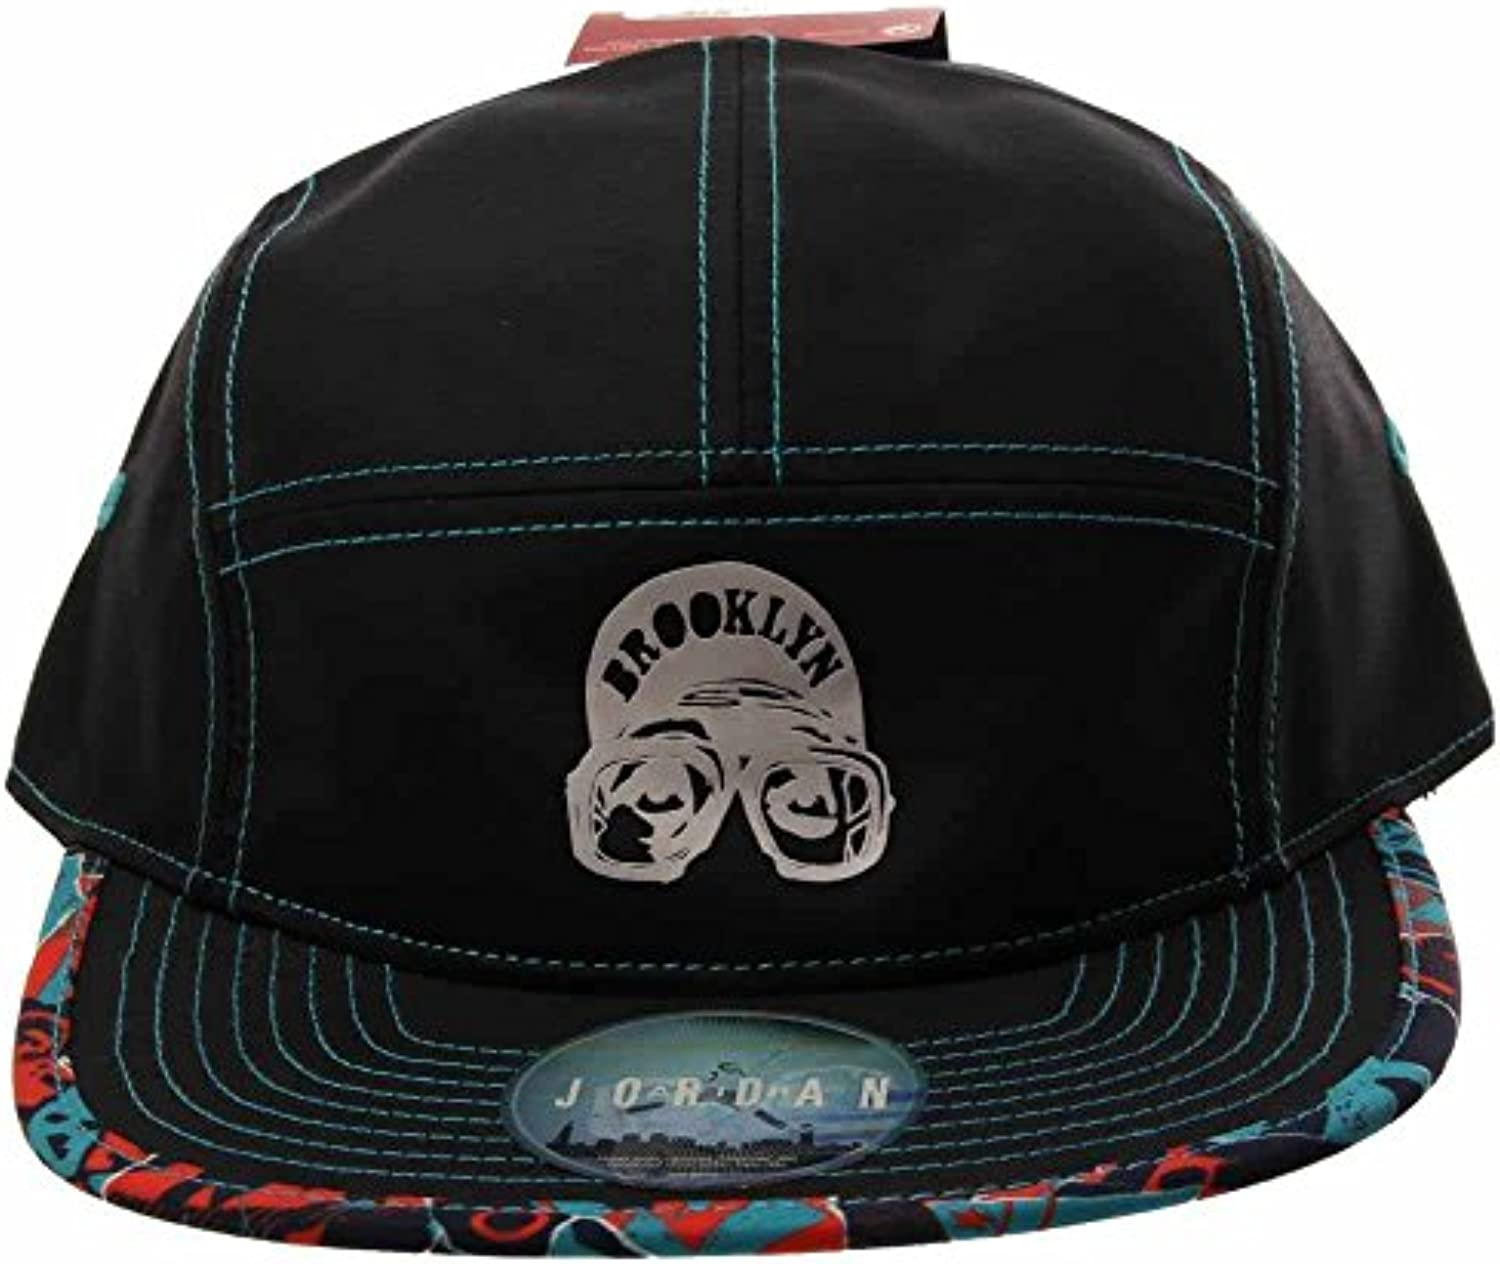 Jordan Nike Jumpman Pattern 5 Panel Snapback Adjustable Hat